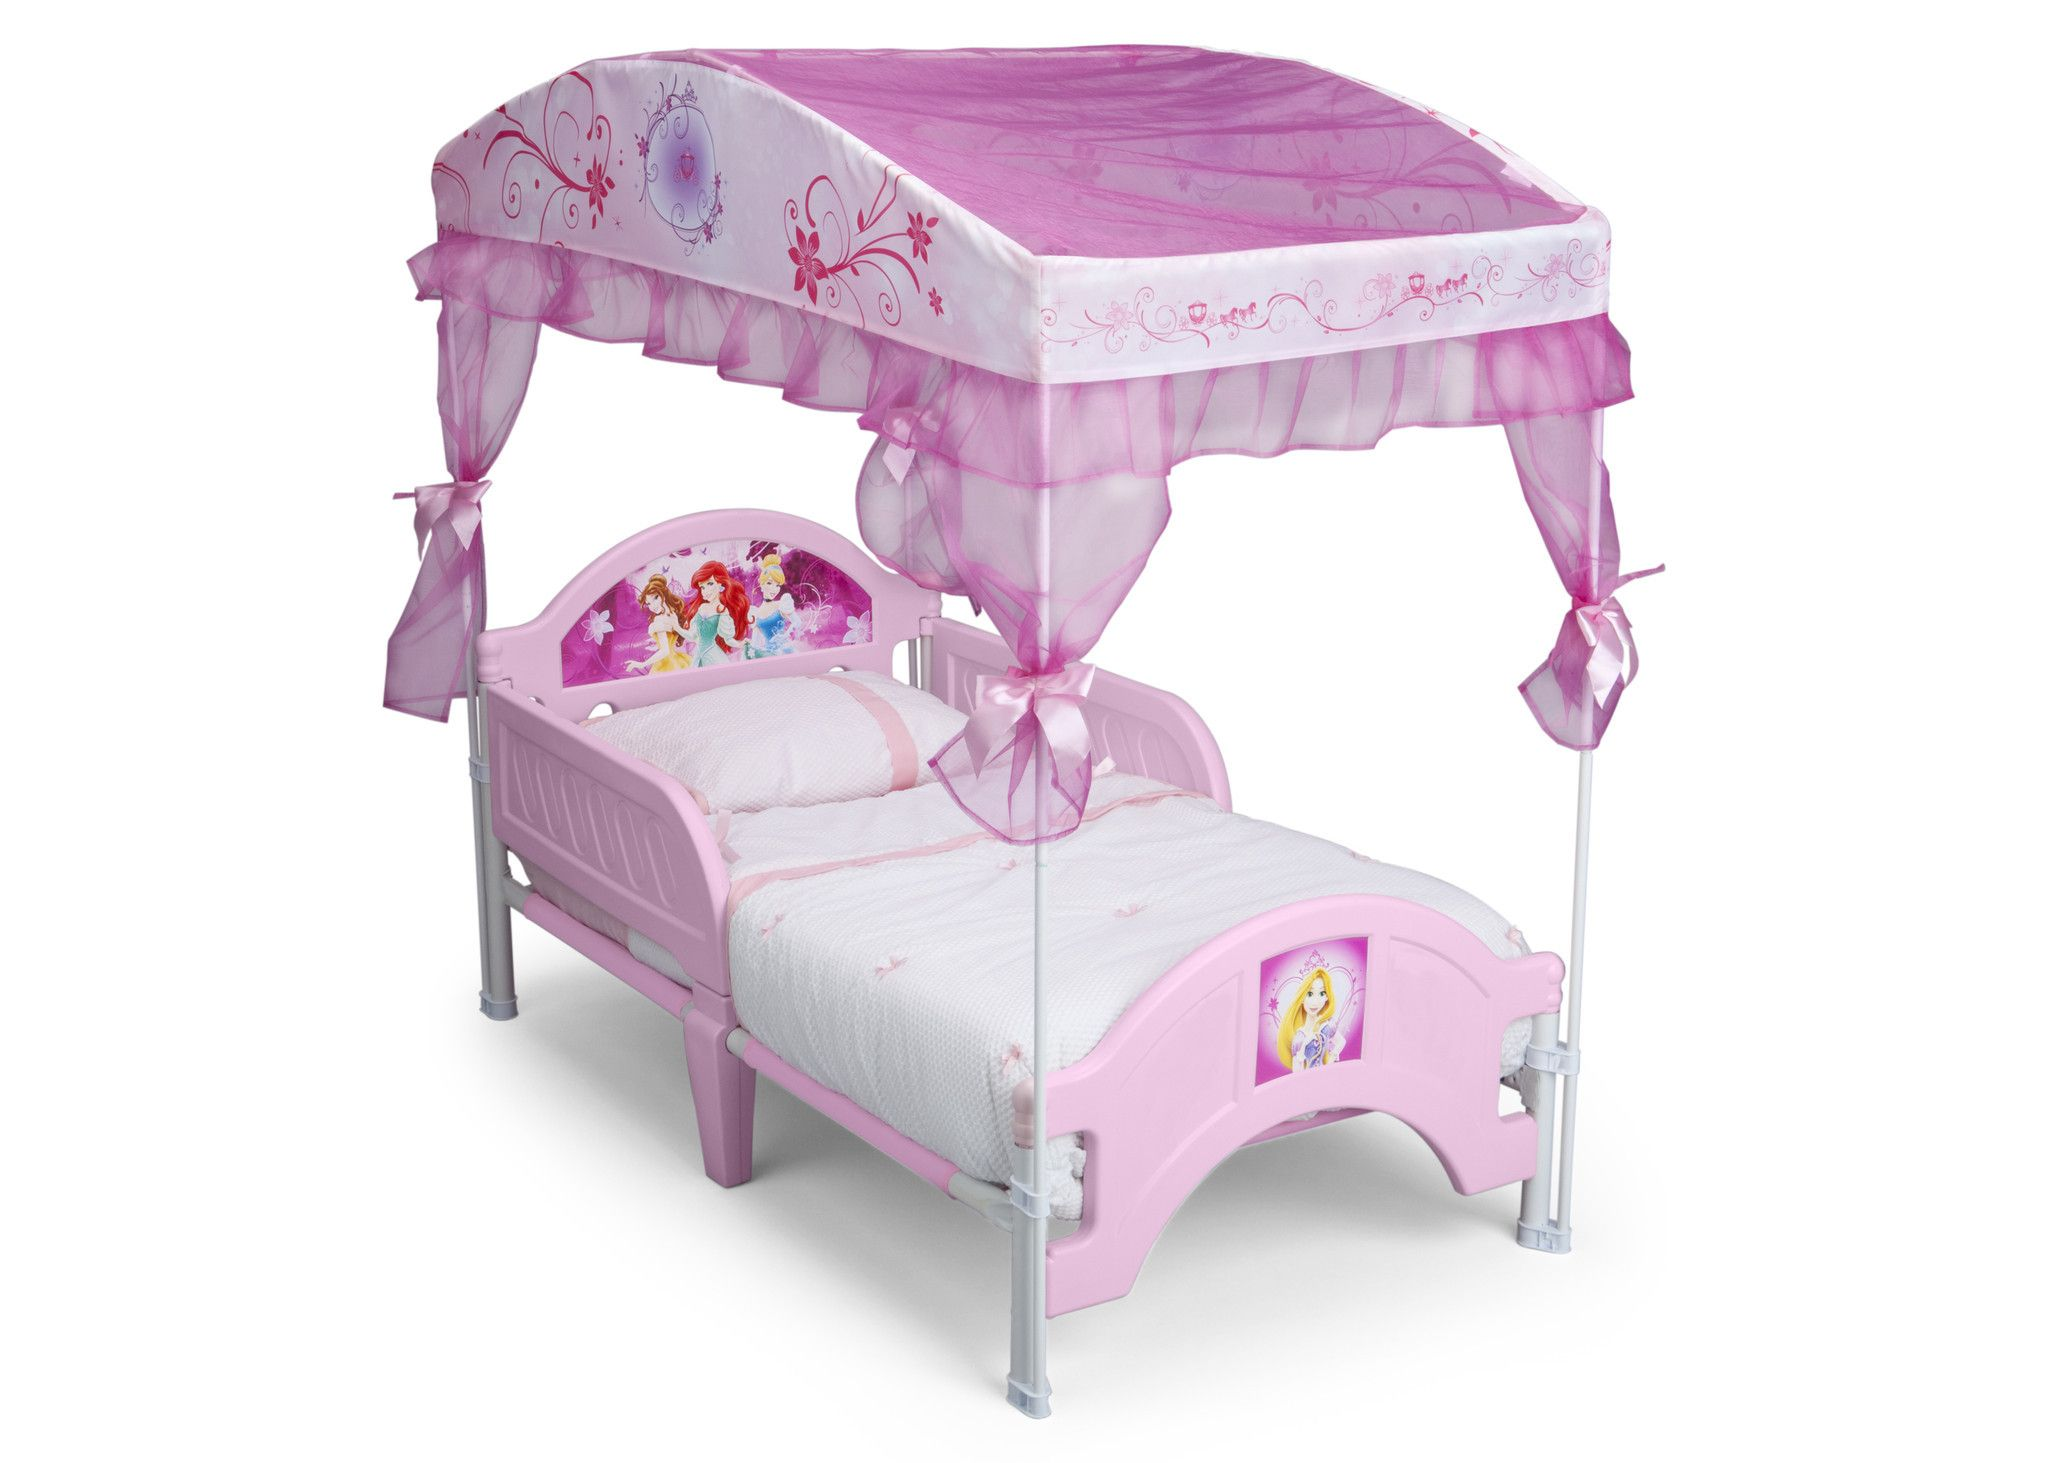 - Princess Toddler Canopy Bed Toddler Canopy Bed, Girls Bed Canopy